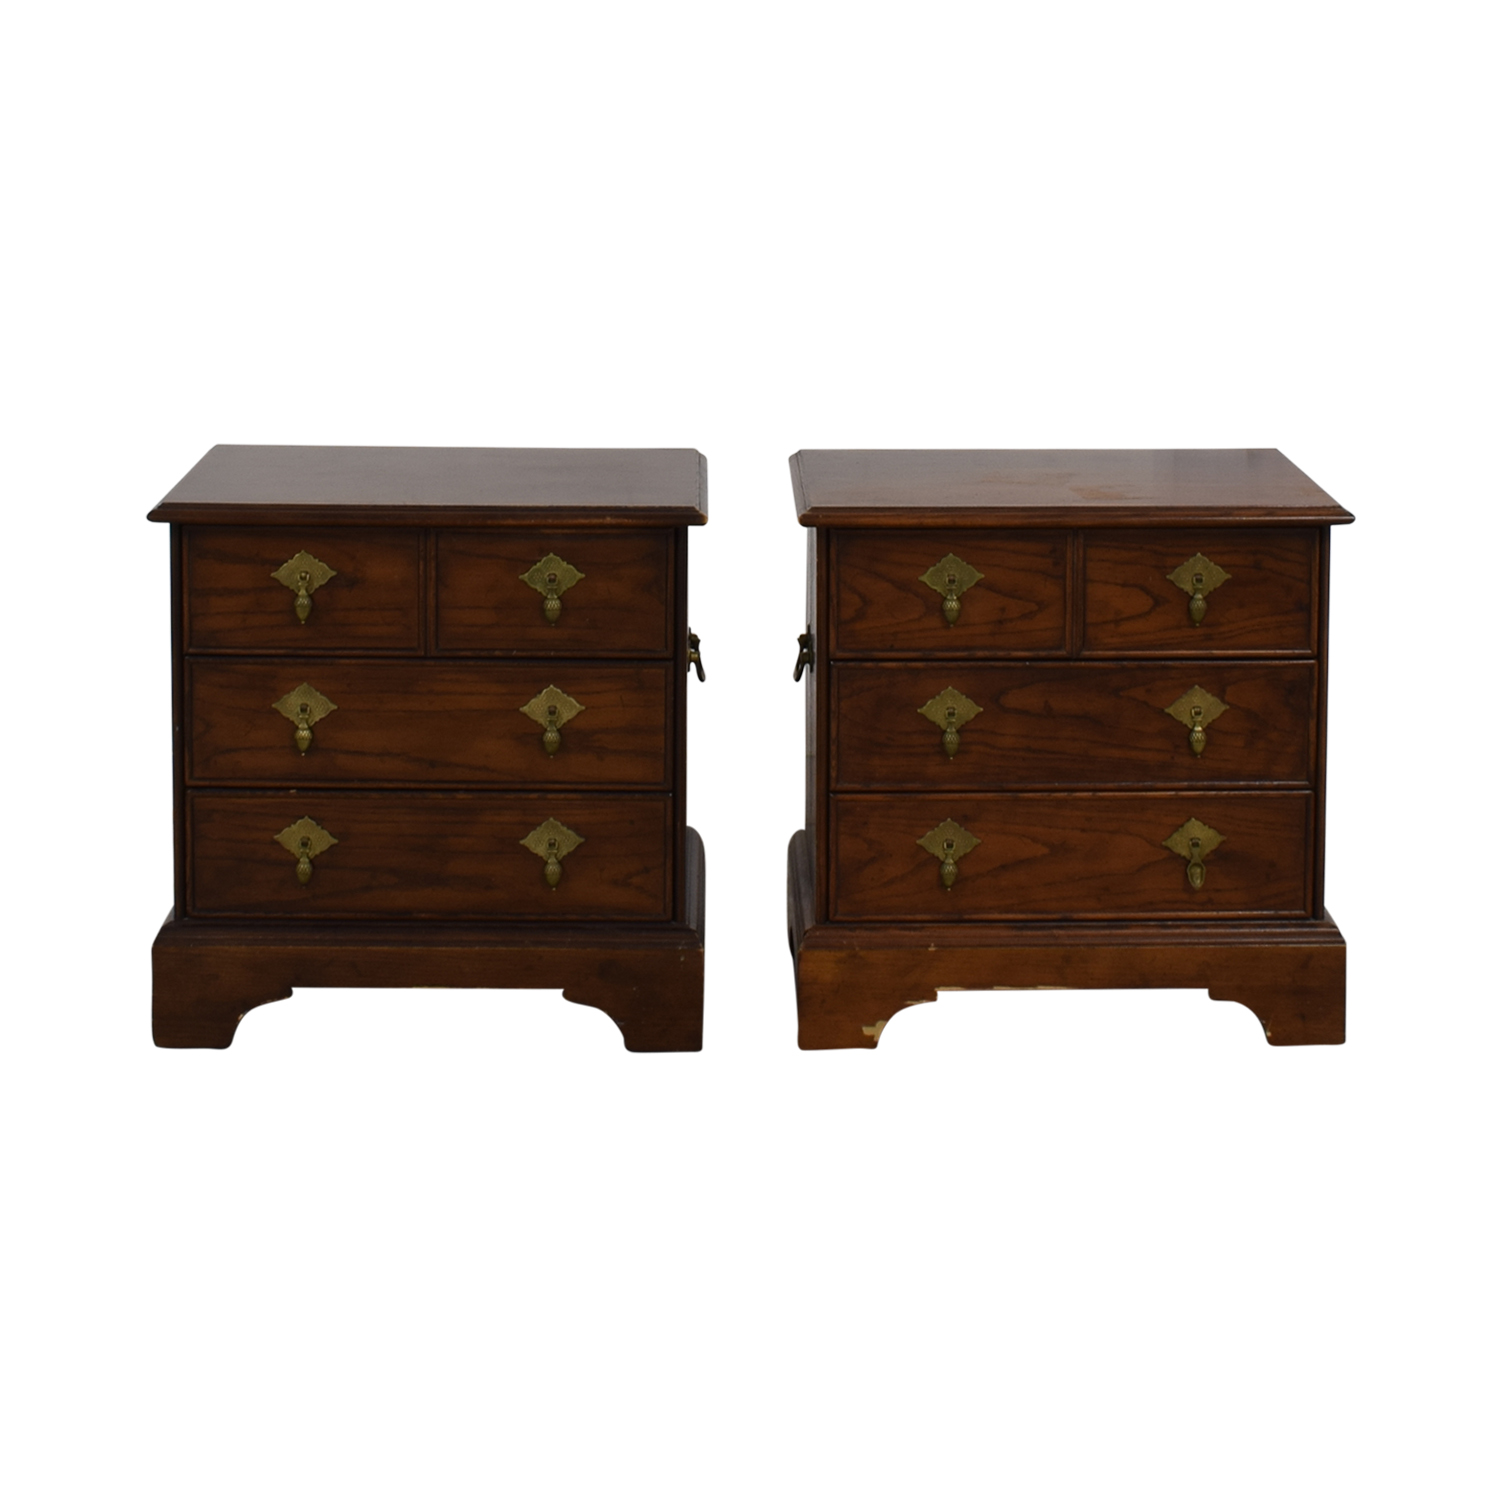 Four-Drawer Wood End Tables End Tables